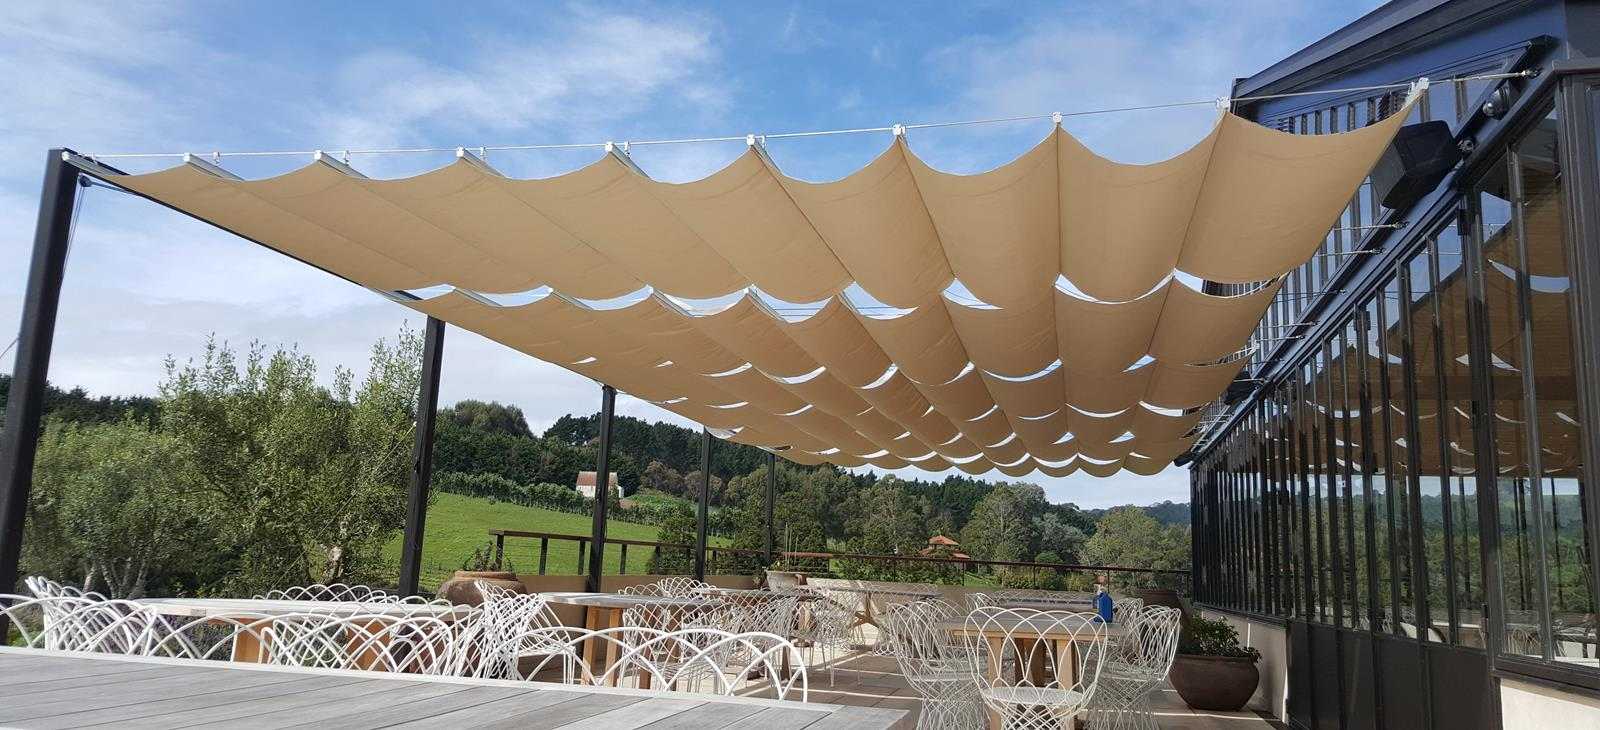 Shade Sails Llc Innovative Tensioned Fabric Canopies